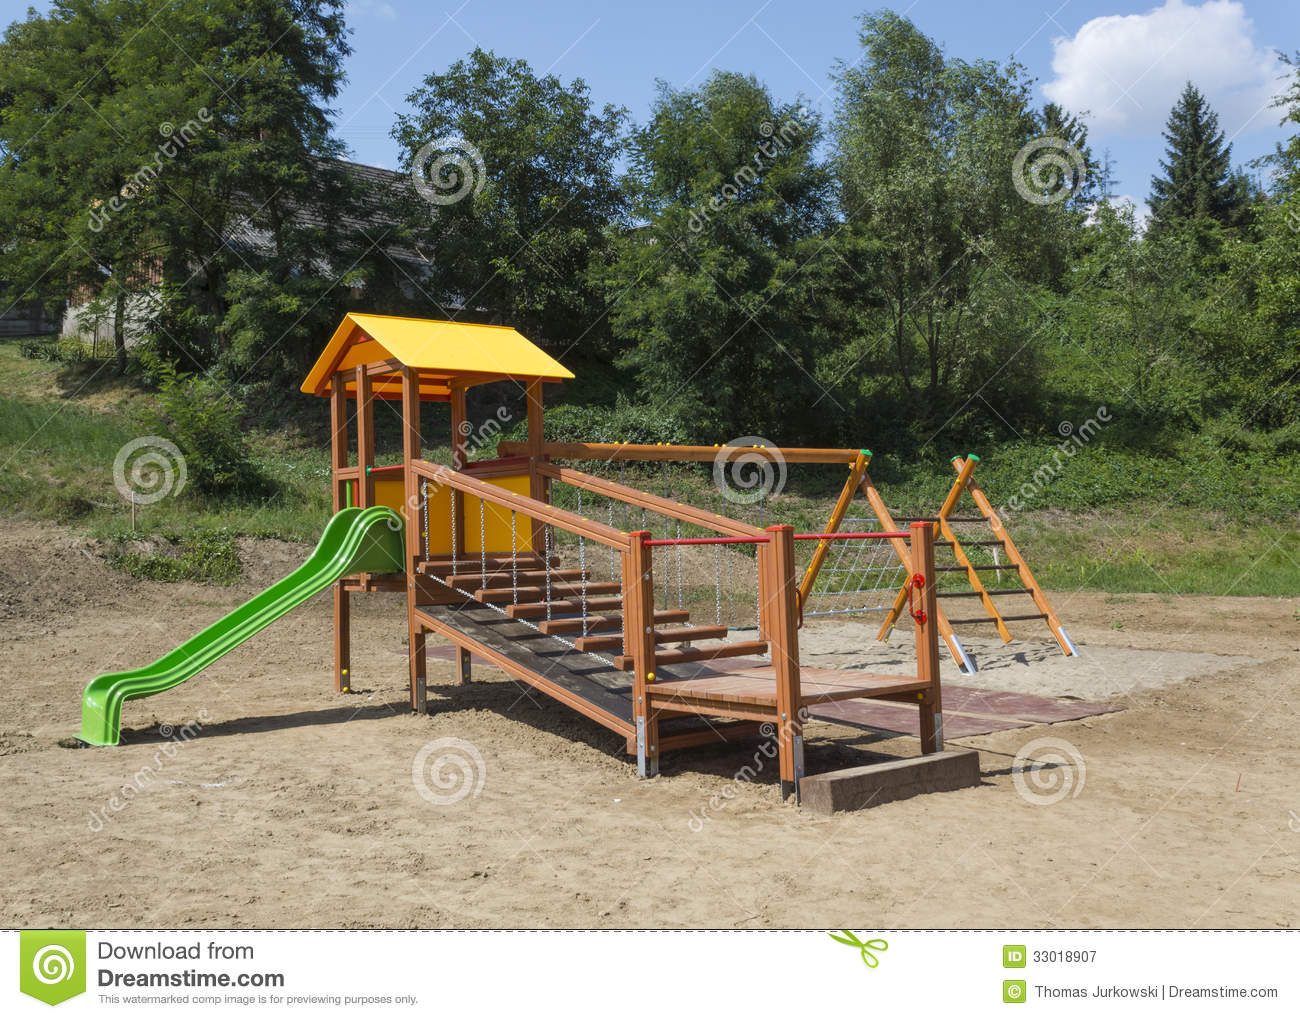 Playground Royalty Free Stock Photography - Image: 33018907